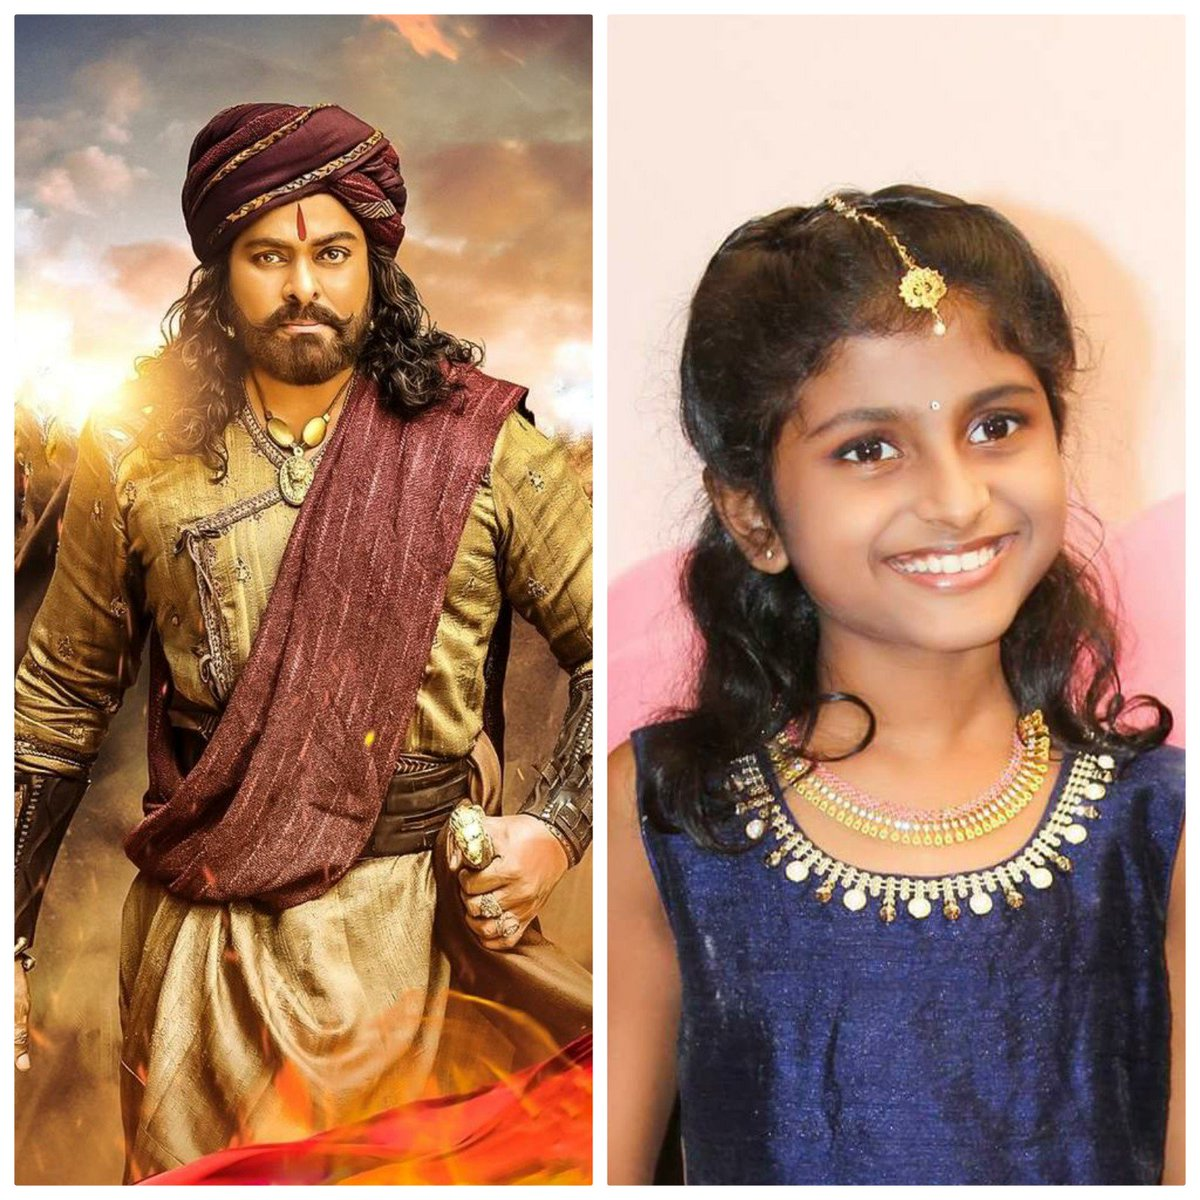 Happy Birthday to my one and only Inspiration & Happy Birthday to my Lovely Daughter Anjali  #HBDMegaStarChiranjeevi  #HBDEvergreenMegaStar<br>http://pic.twitter.com/Z3s4czr79b